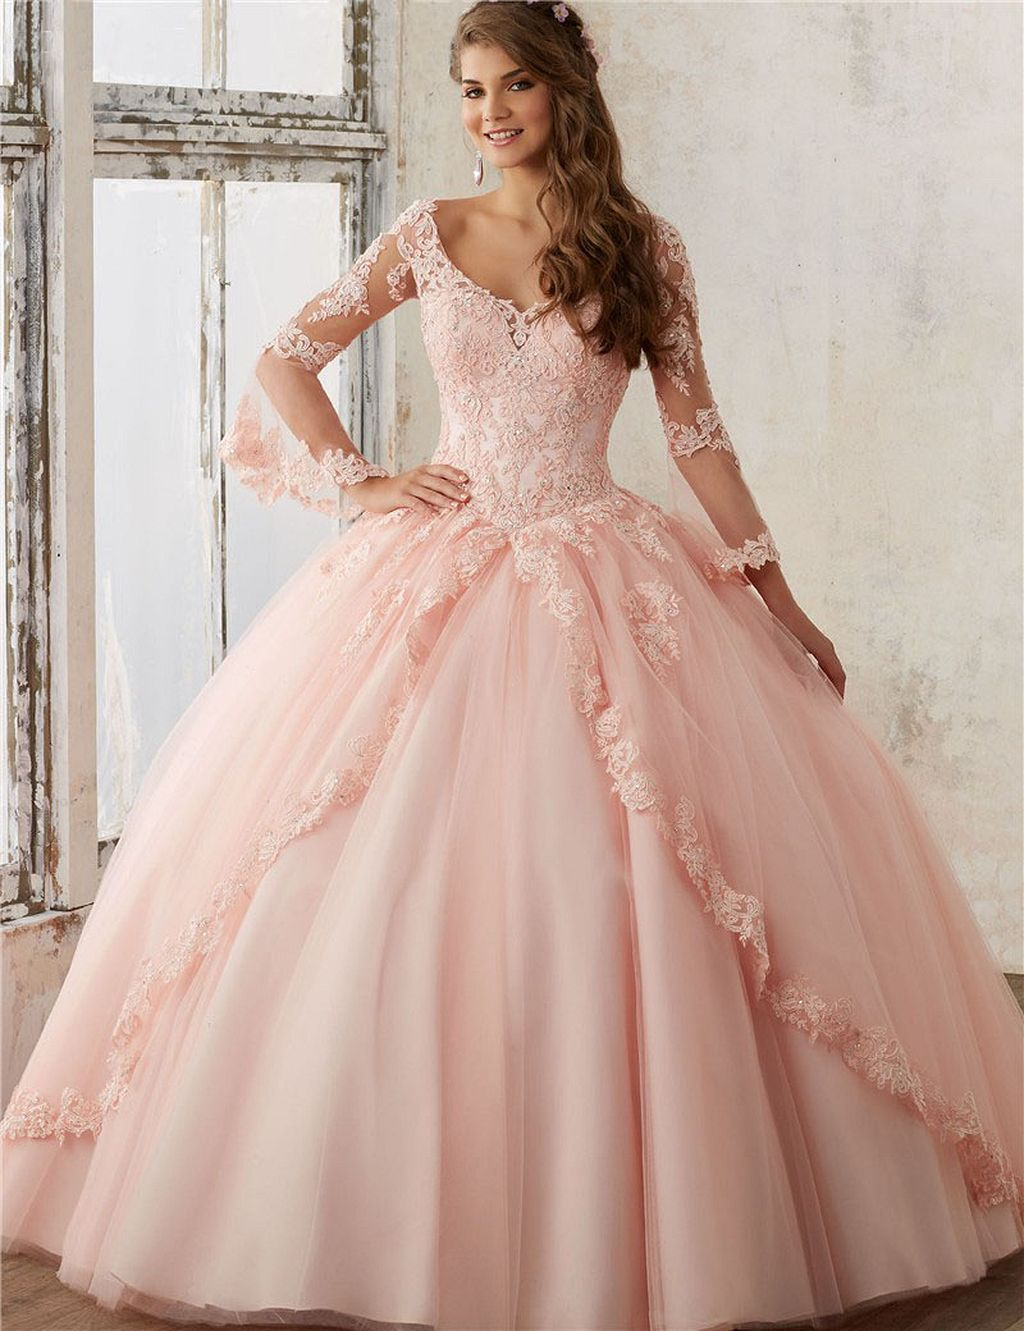 20+ Vintage Quinceanera Dresses For Your Wedding | Vestidos para ...